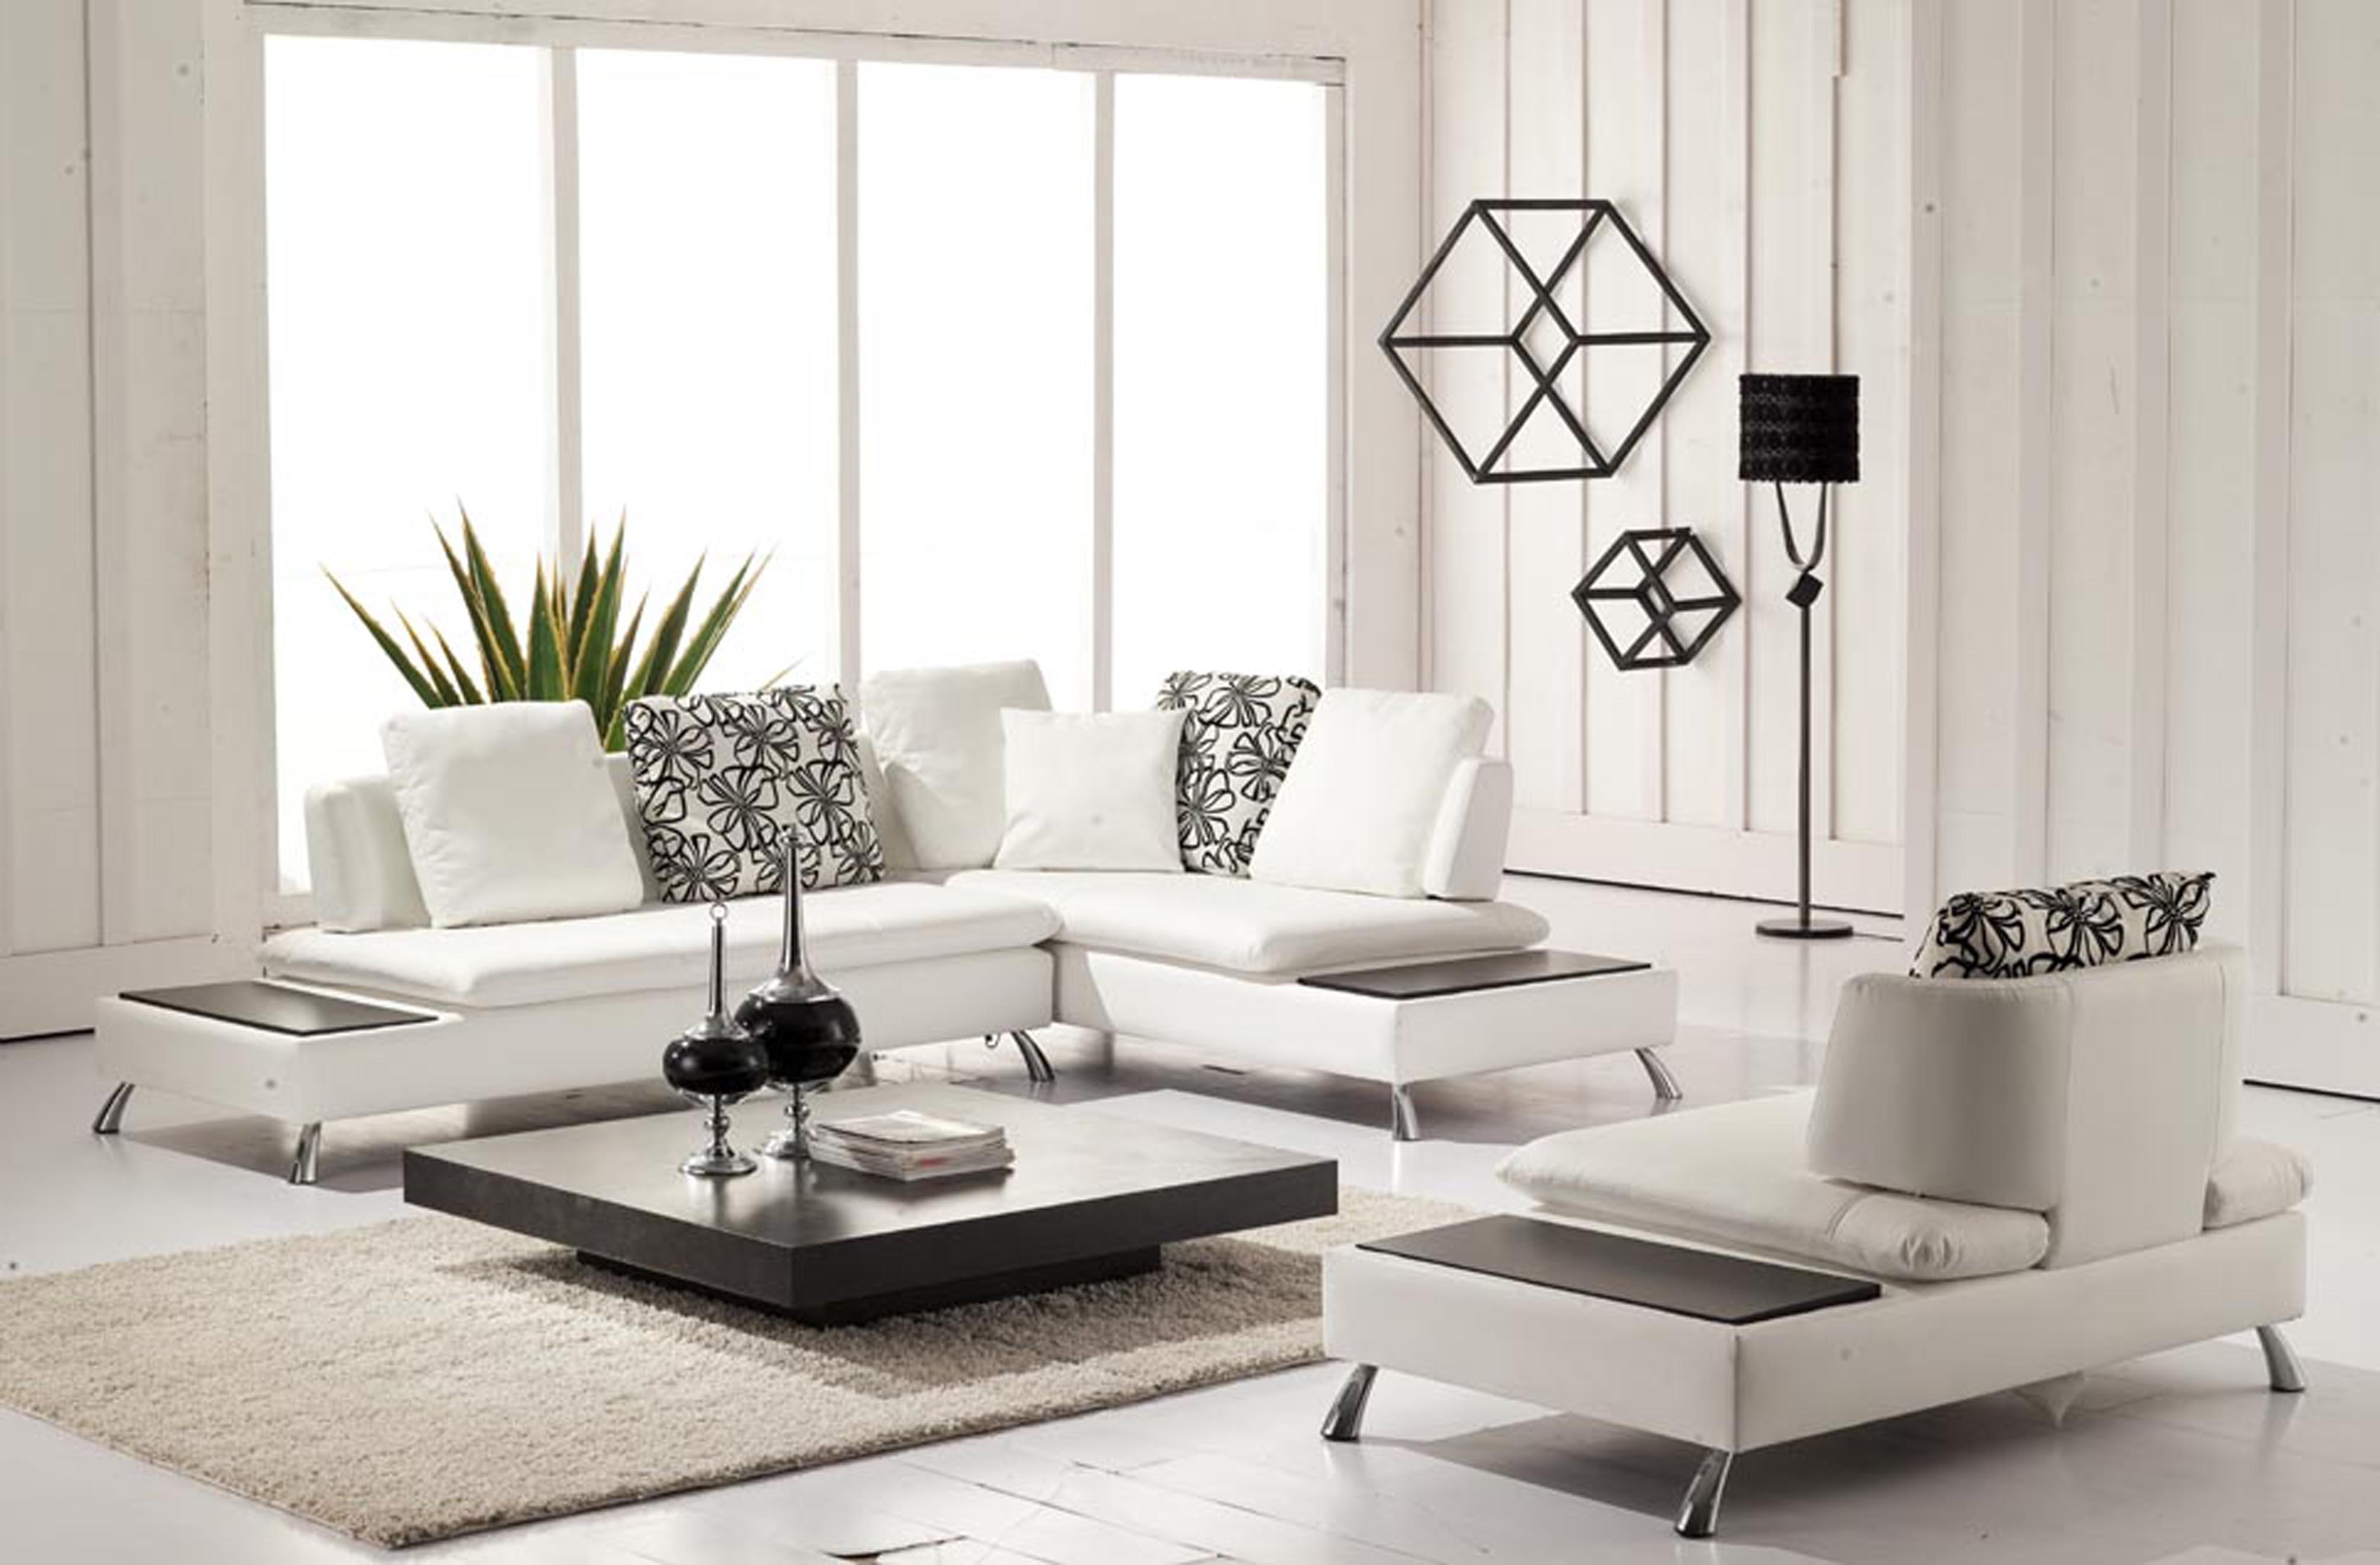 Fashionable Inexpensive Leather Sectional Sofa For Small Apartment Layout With With Regard To Inexpensive Sectional Sofas For Small Spaces (View 6 of 20)